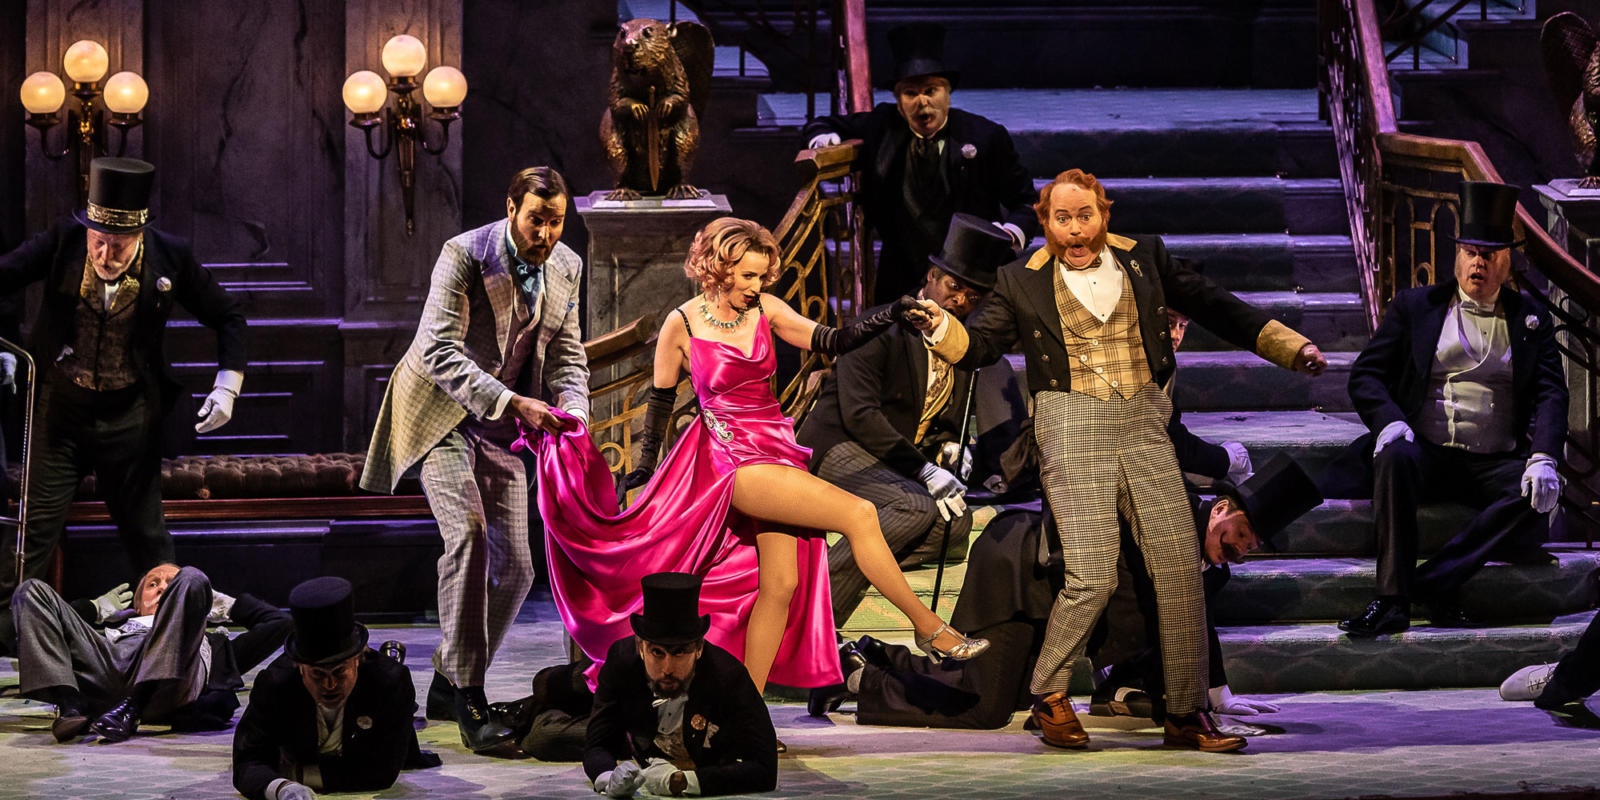 ENO The Merry Widow: Sarah Tynan, Nicholas Lester and Andrew Shore (c) Clive-Barda